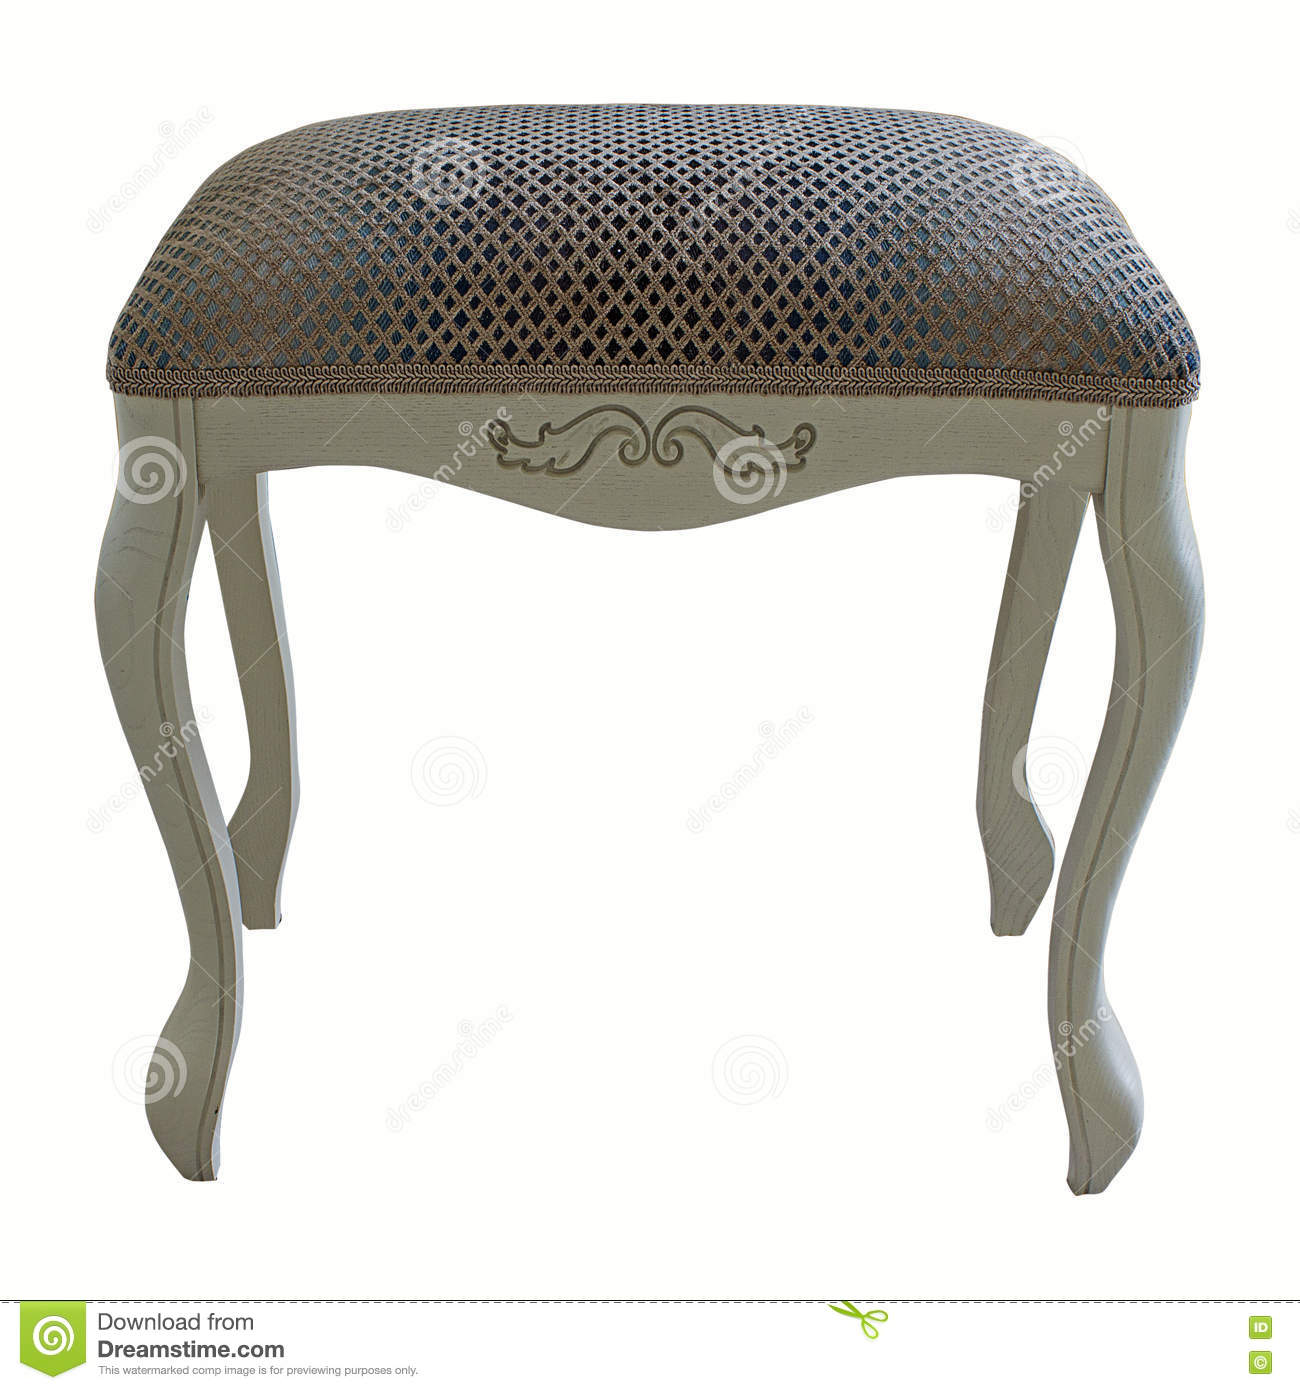 Wooden bedside stool chair  sc 1 st  Dreamstime.com & Wooden Bedside Stool Chair Stock Photo - Image: 80888408 islam-shia.org